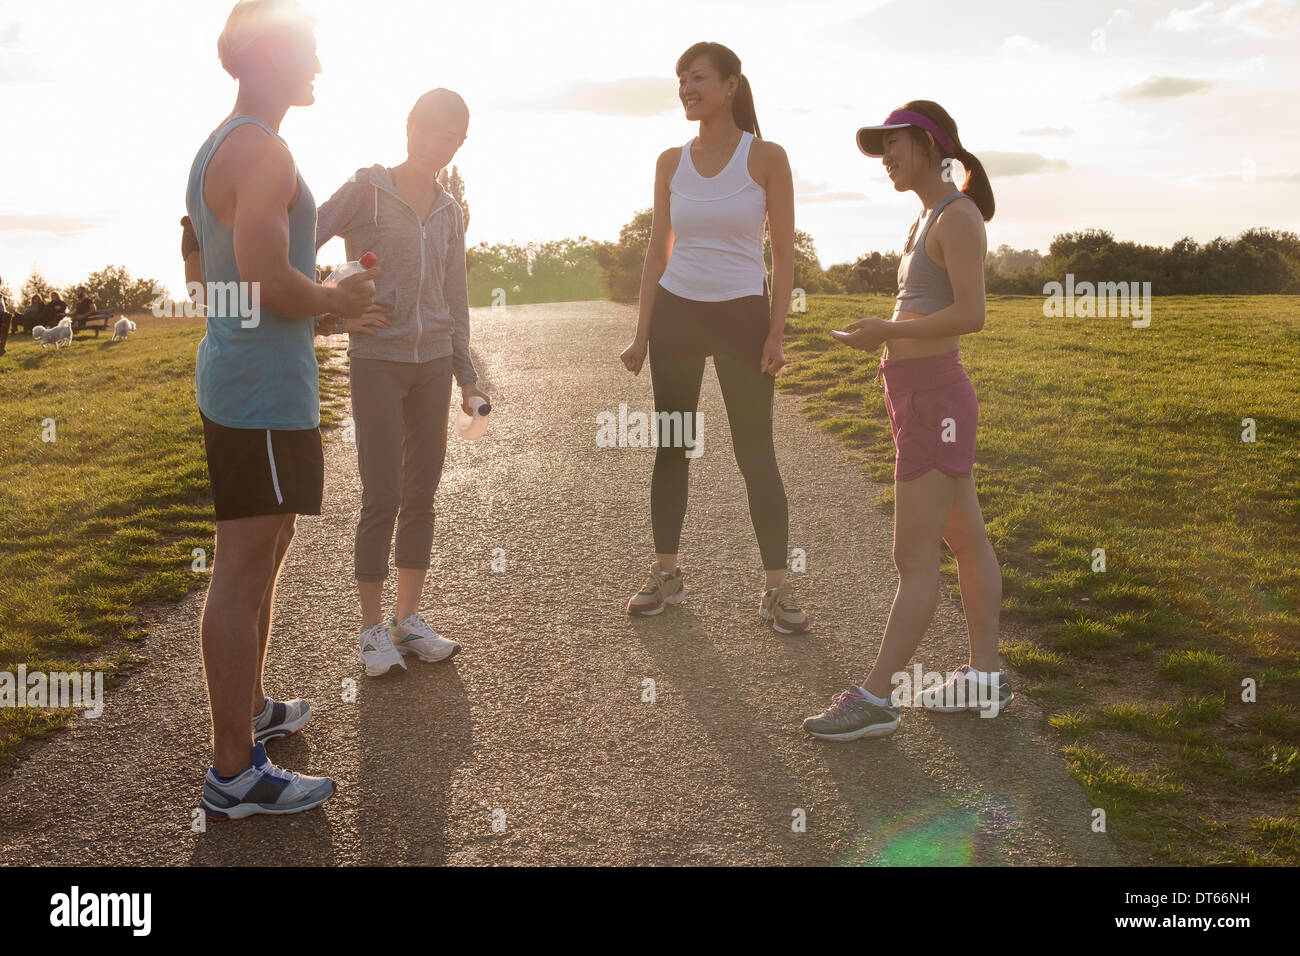 Personal trainer with group of clients preparing for run - Stock Image